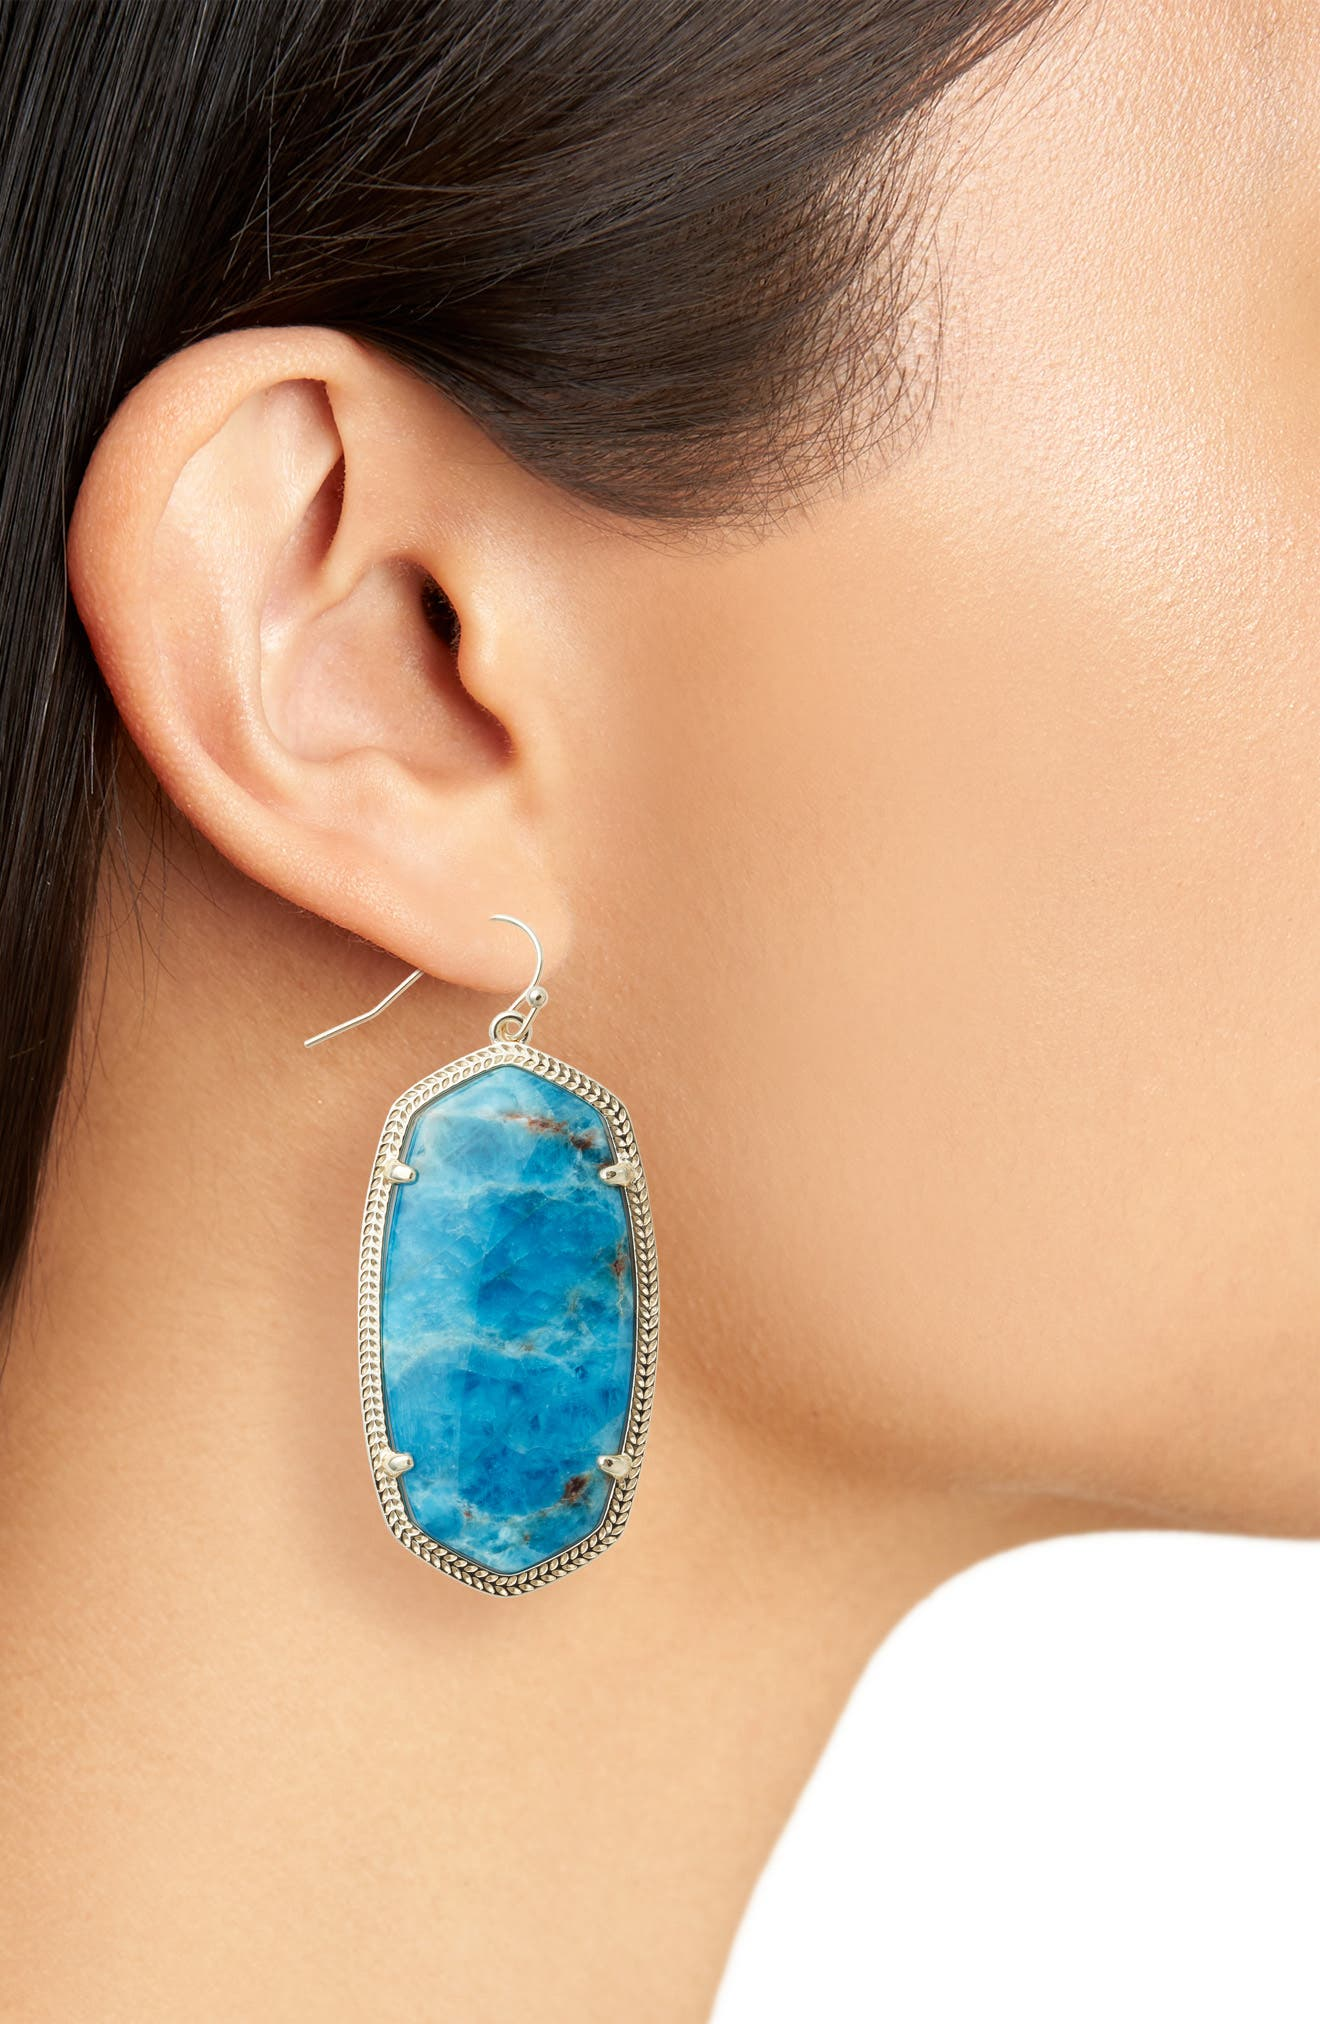 Danielle - Large Oval Statement Earrings,                             Alternate thumbnail 107, color,